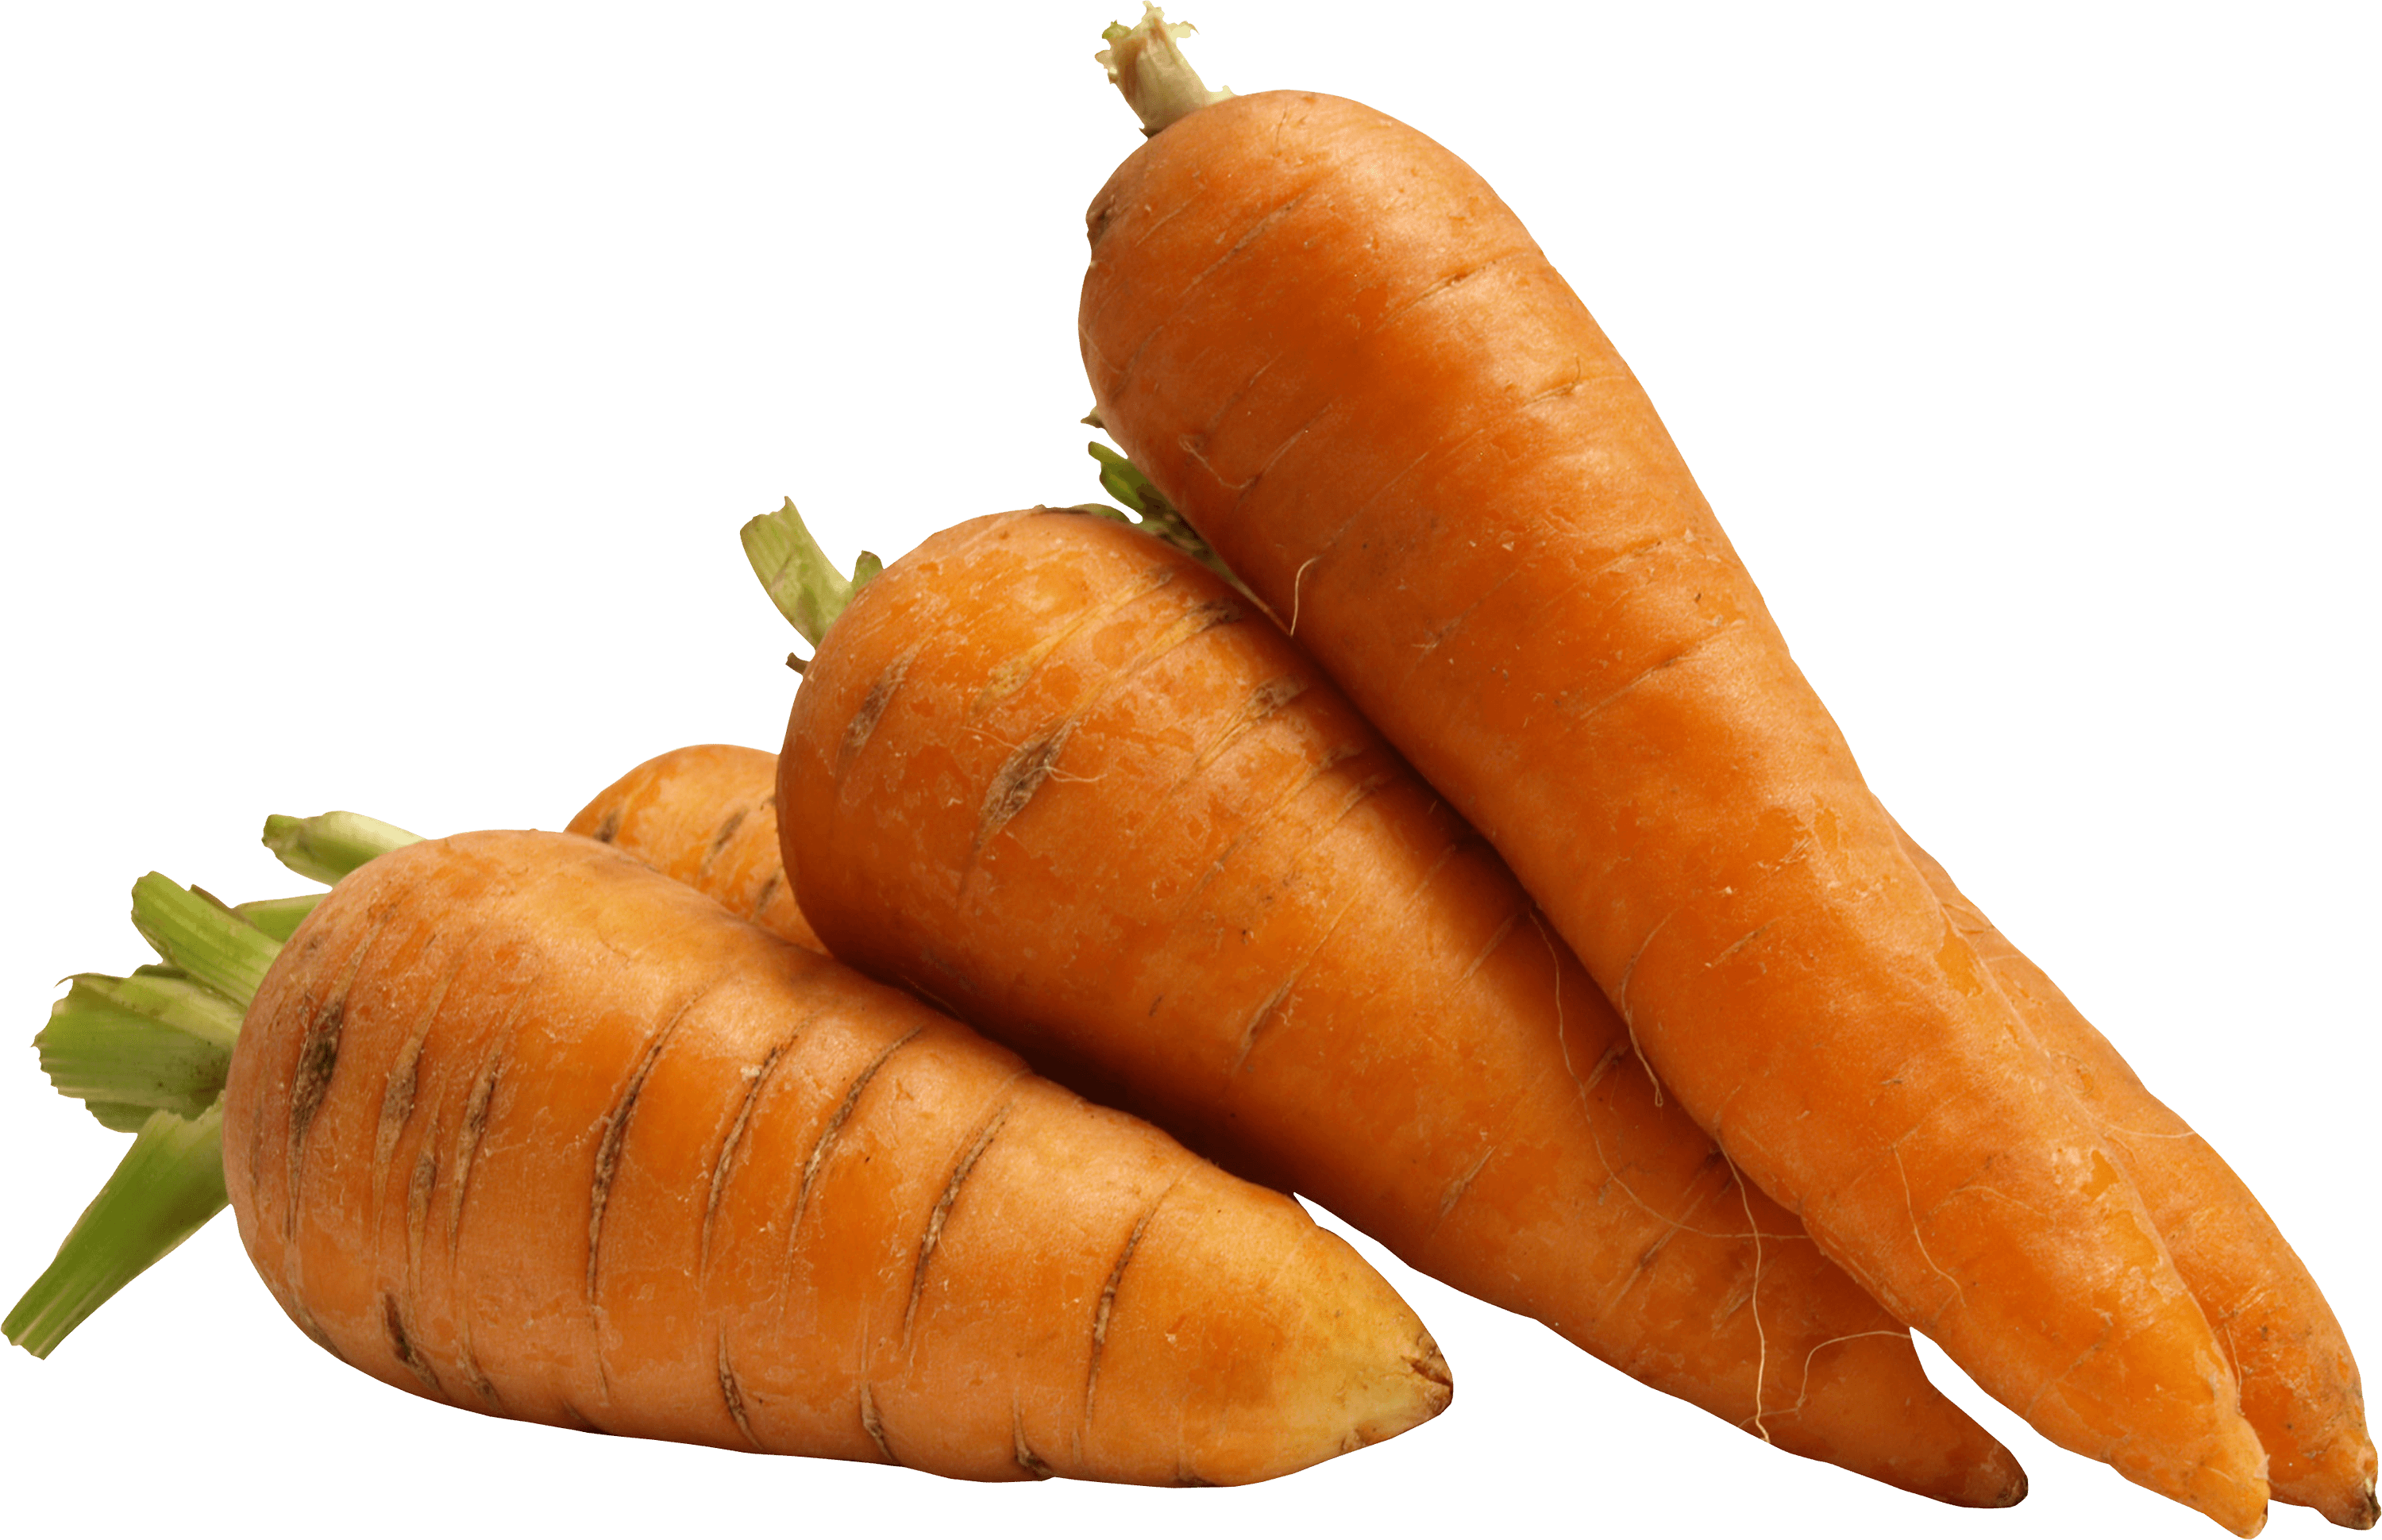 Carrots transparent. Carrot hd png images